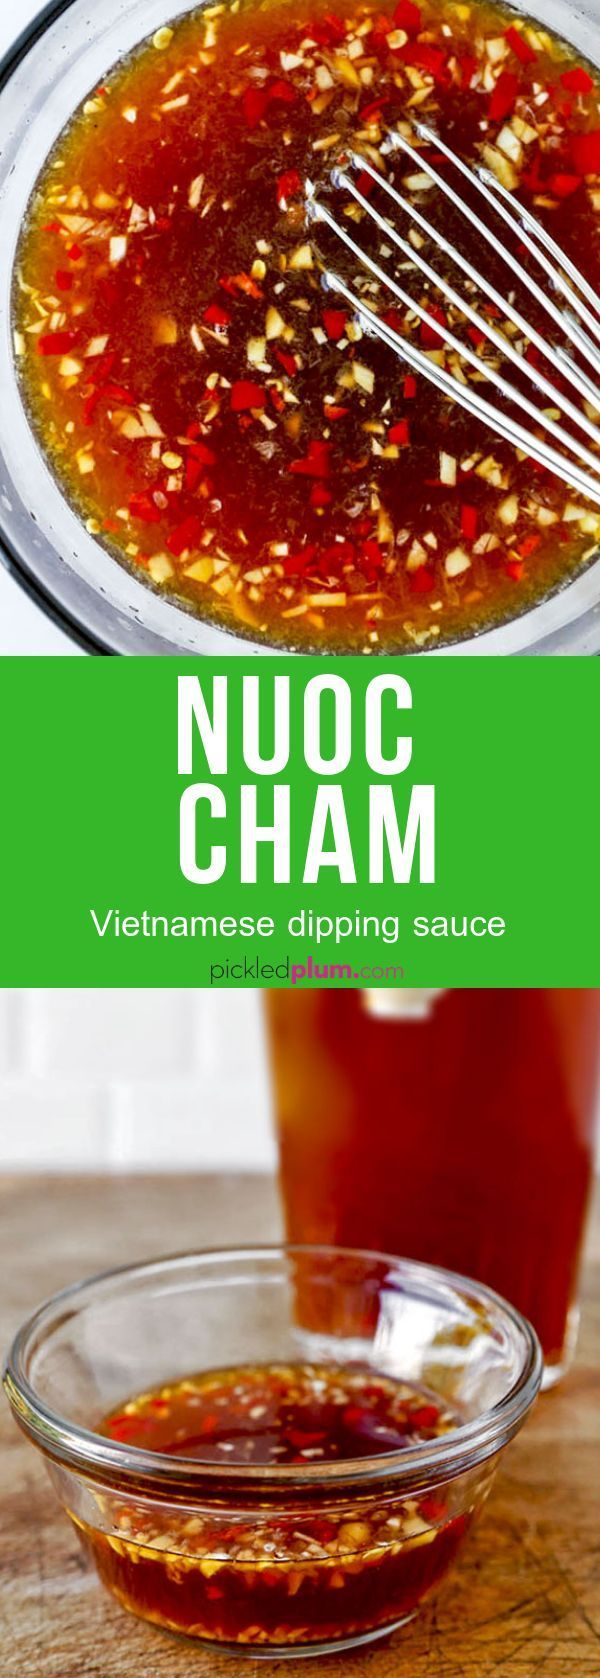 Nuoc Cham (Vietnamese Dipping Sauce) Nuoc Cham Recipe (Vietnamese Dipping Sauce) - Use it on shrimp, fish, banh xeo, meats or tofu, this nuoc cham sauce pairs well with so many dishes! Easy to make and so tasty! |